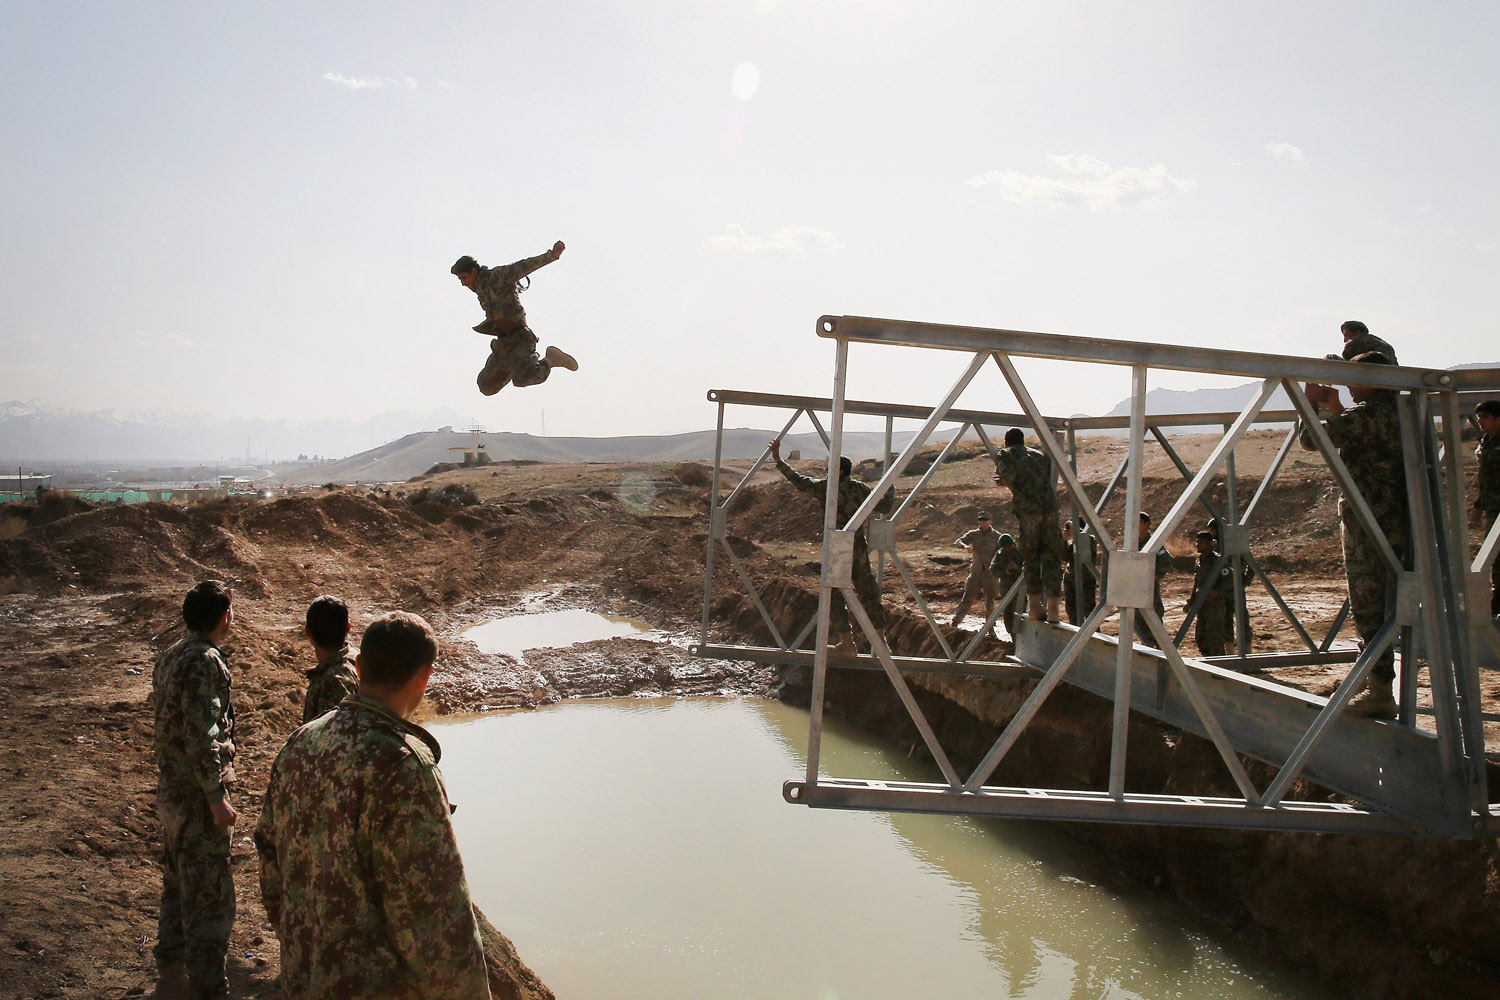 Mar. 18, 2014.  A soldier with the Afghan National Army's (ANA) National Engineer Brigade leaps from the top of a Mabey-Johnson portable pre-fabricated bridge which his unit was learning to construct.